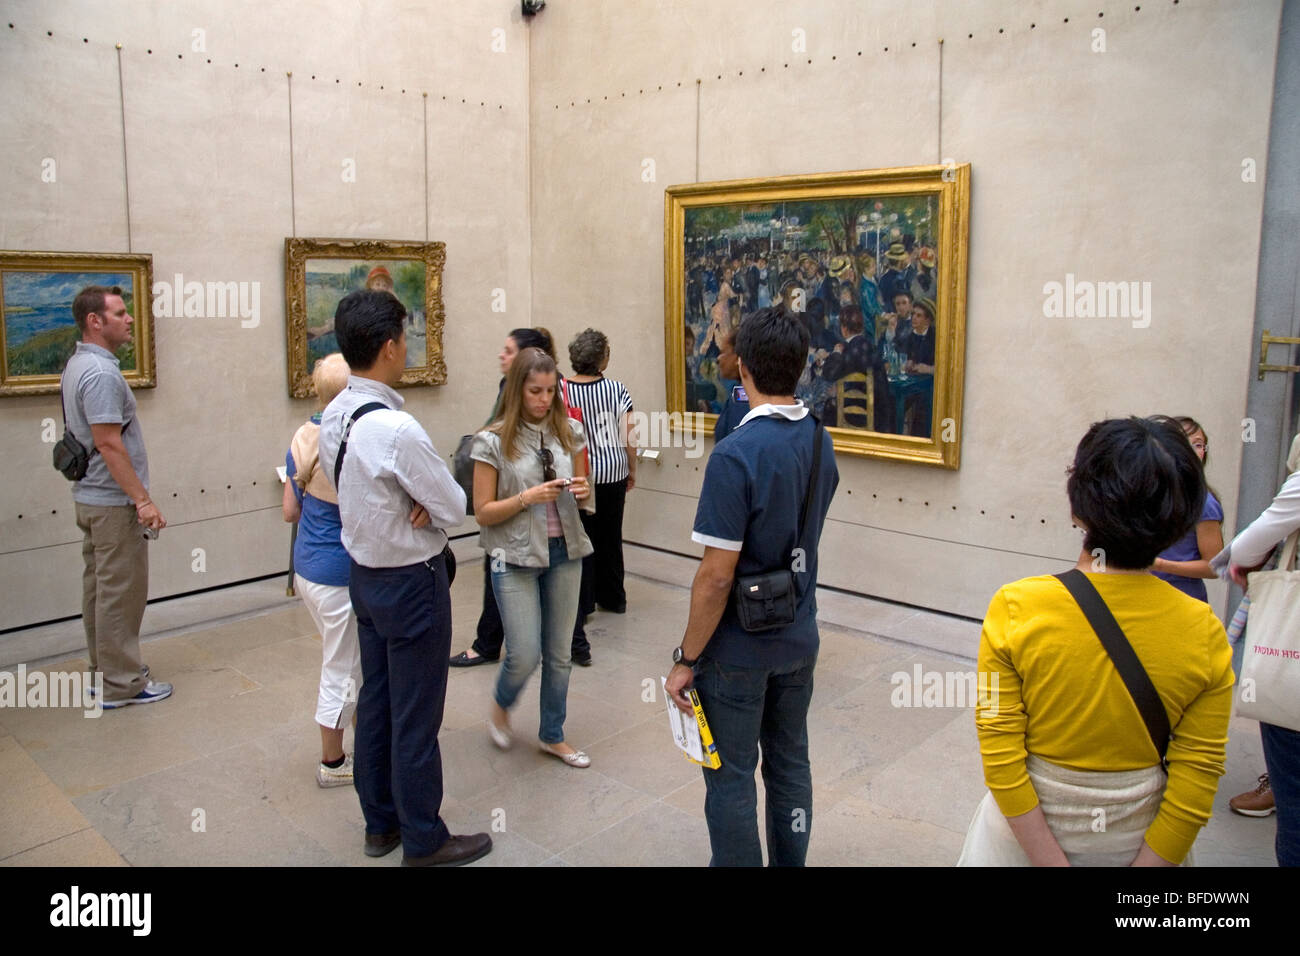 Visitors view artwork displayed in the Musee d'Orsay, Paris, France. - Stock Image